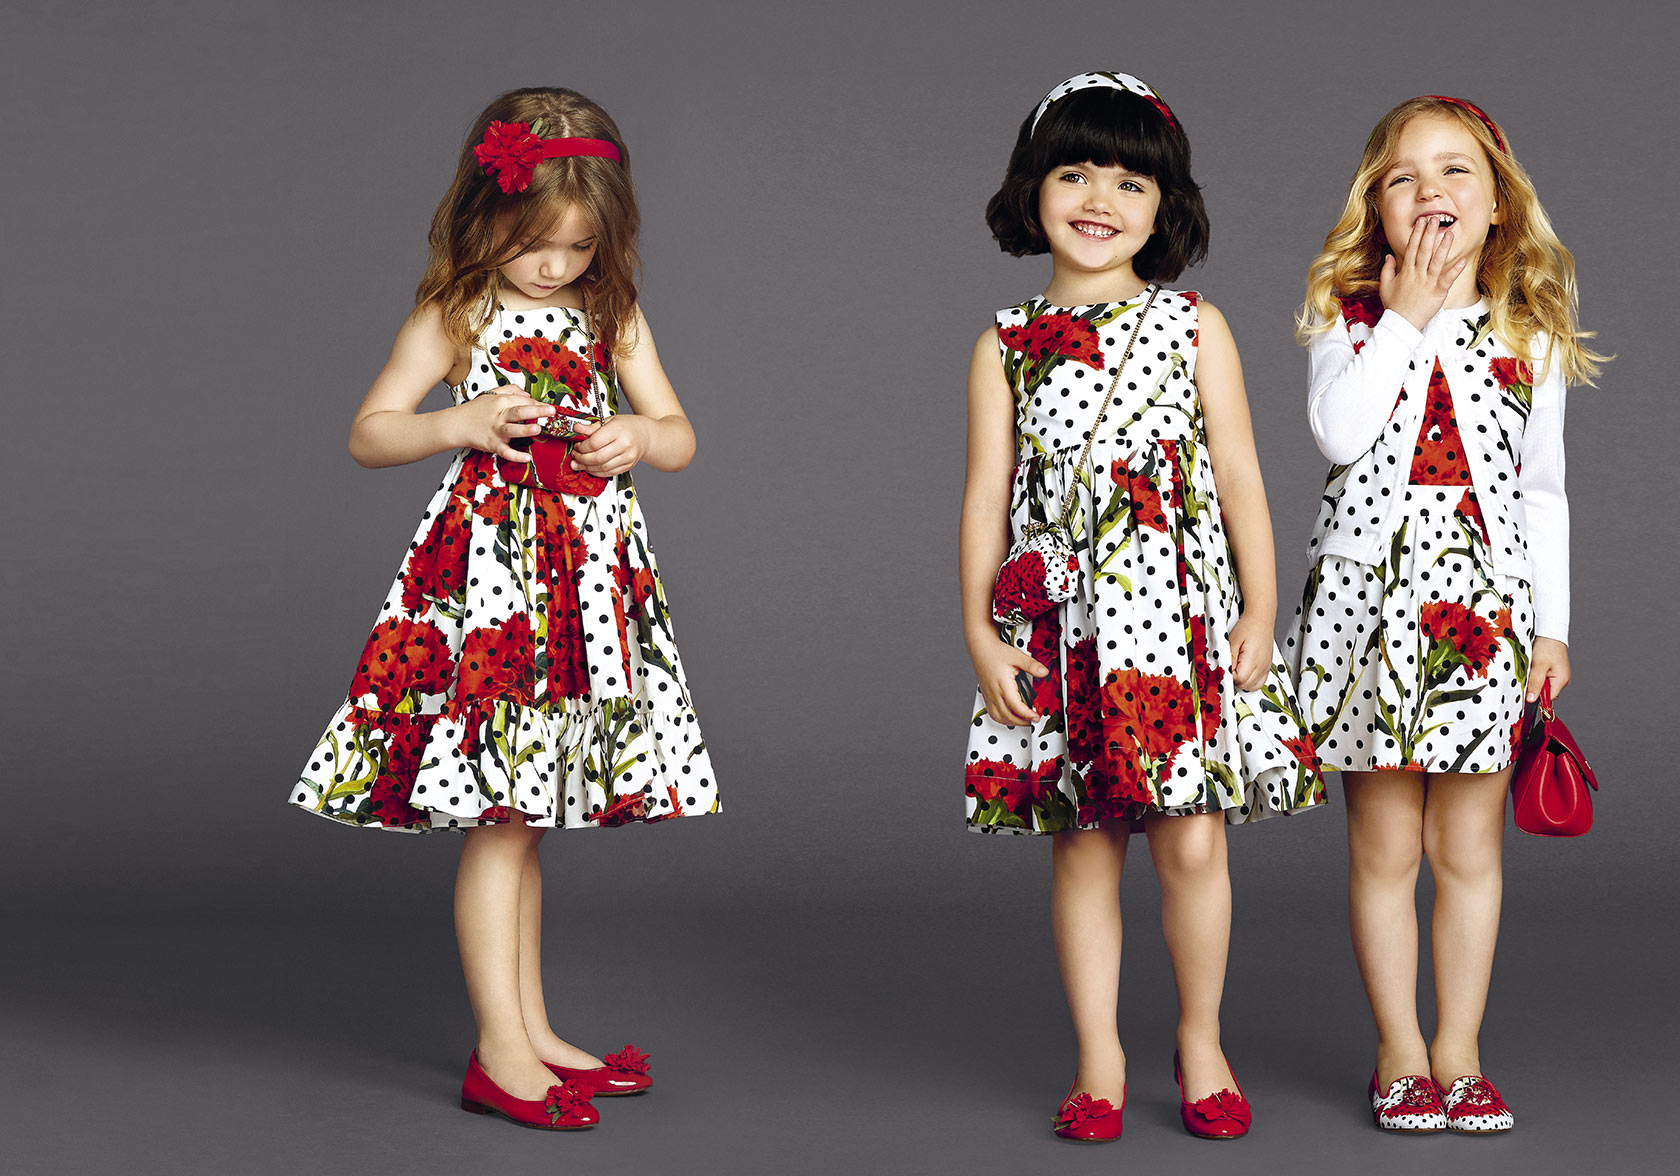 Dolce and Gabbana mini-me white dresses with black spots and red carnations